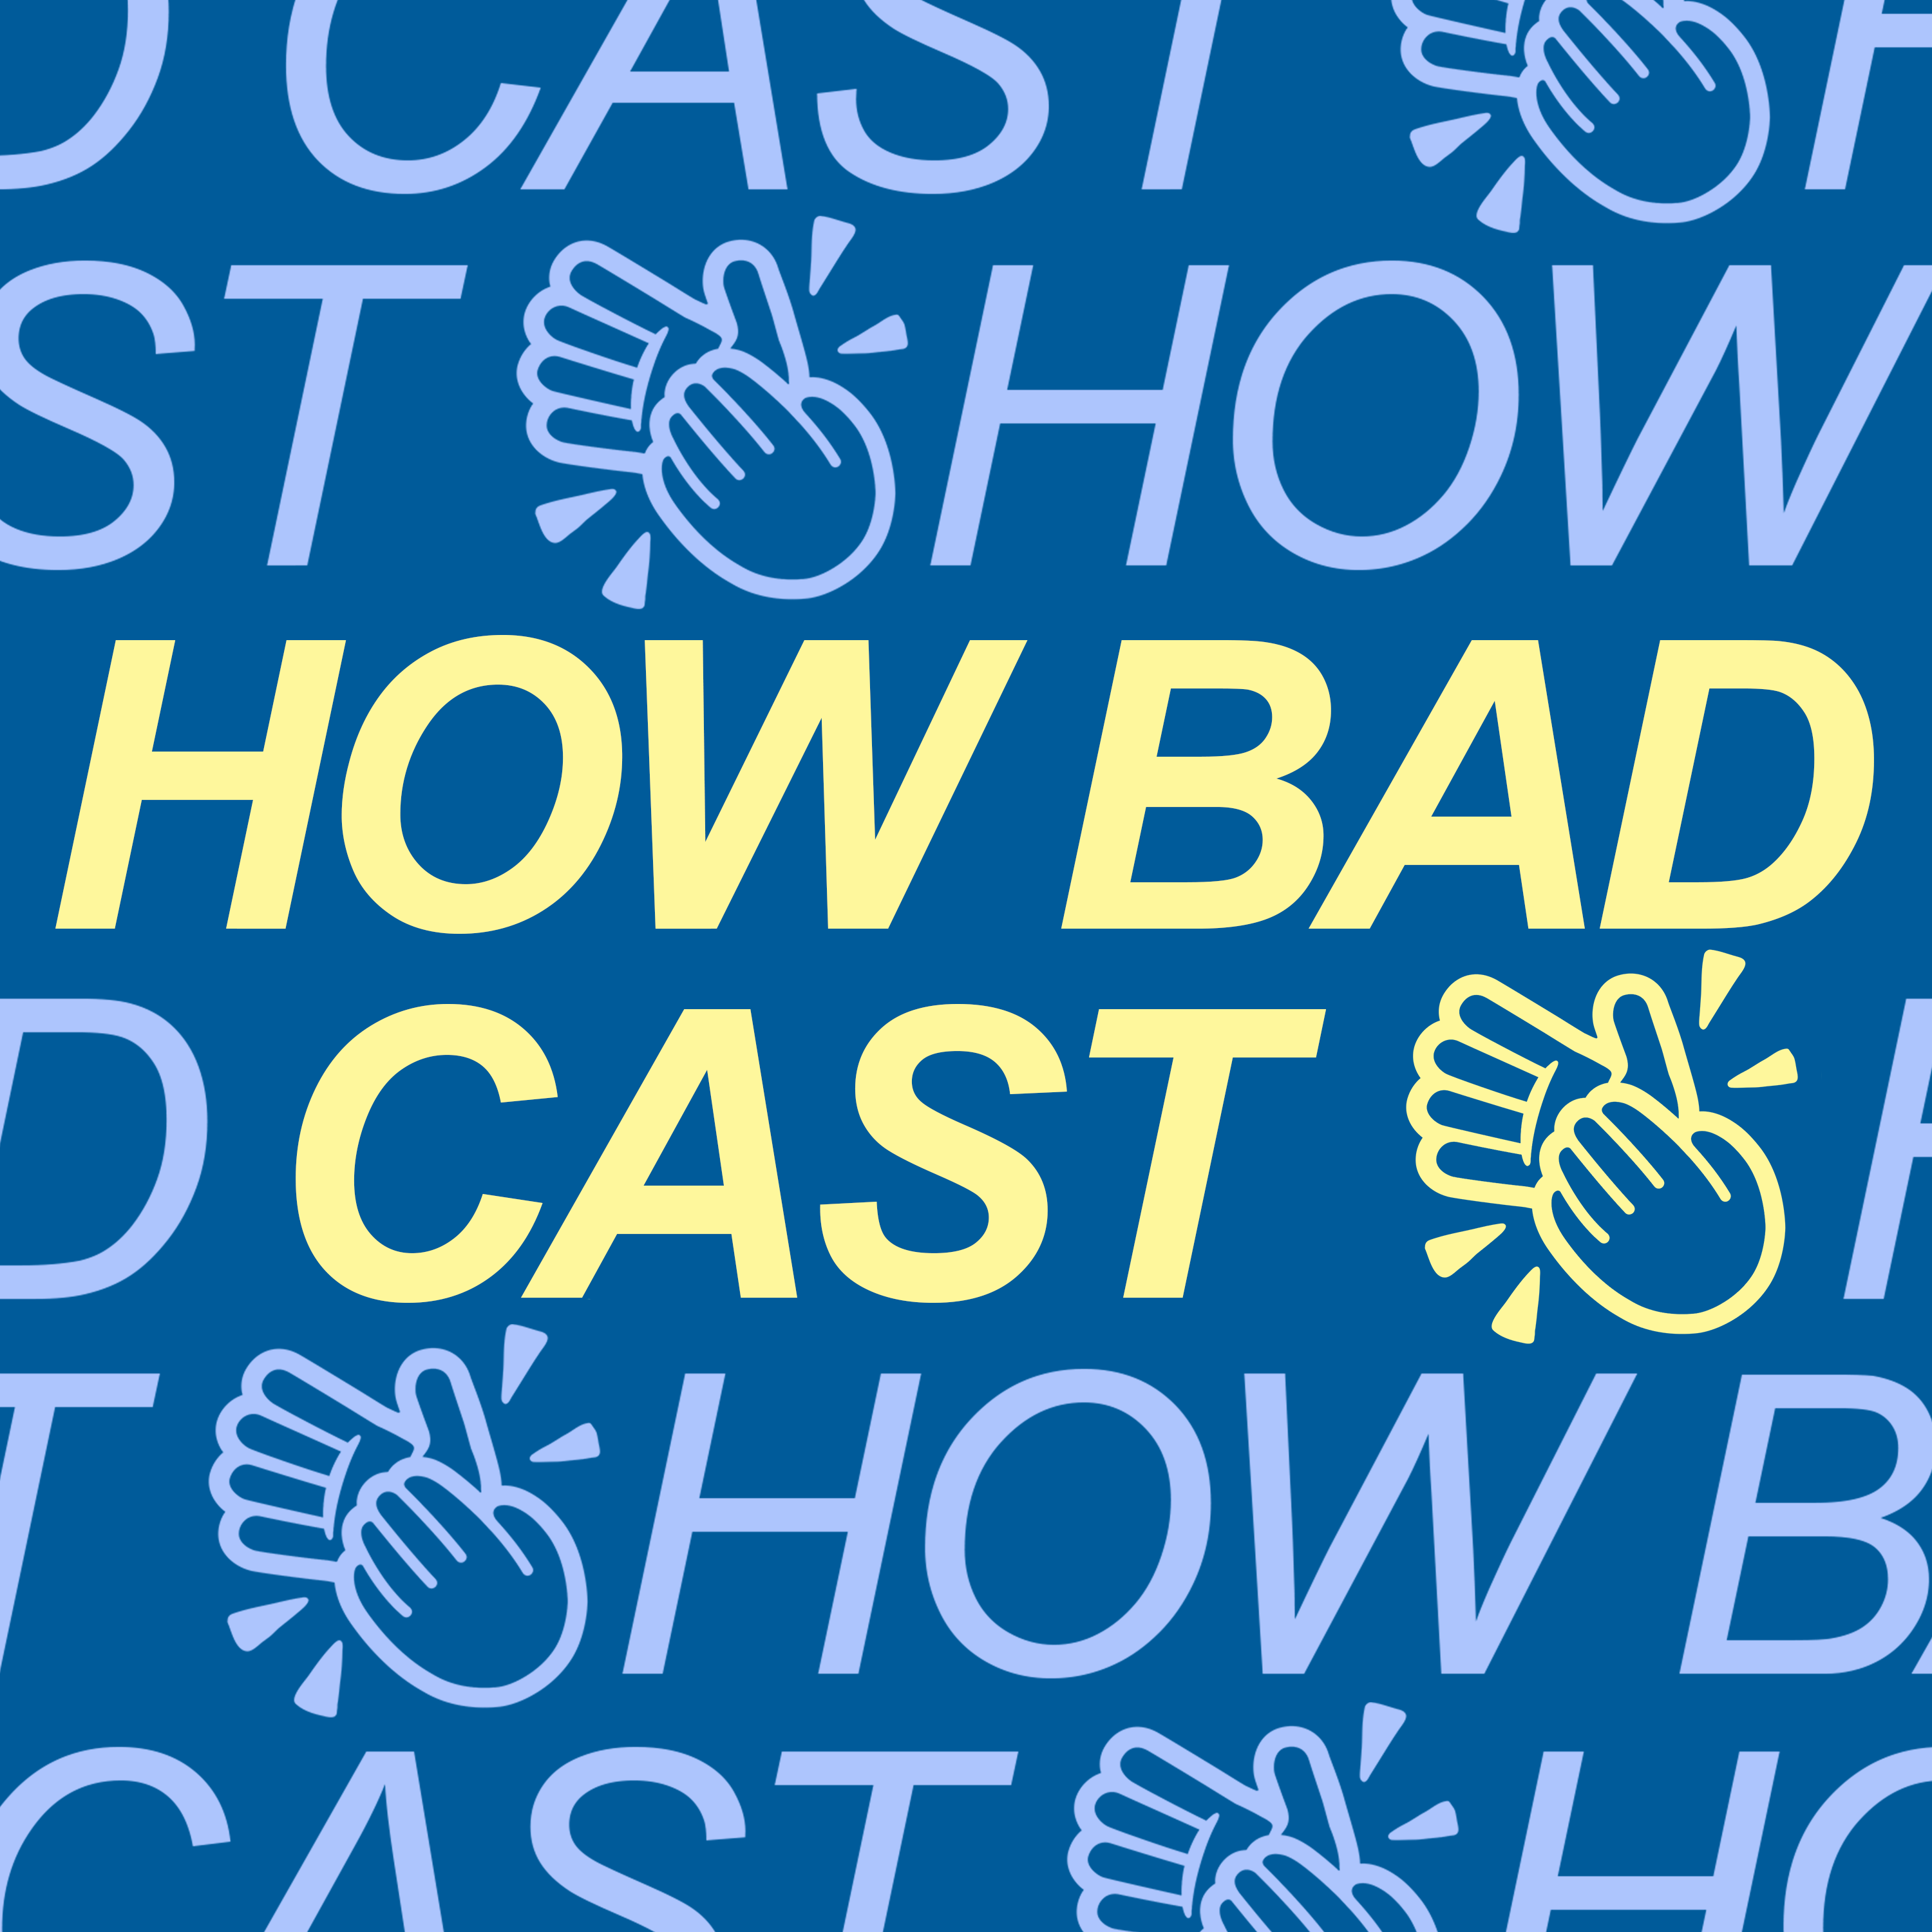 How Bad Cast